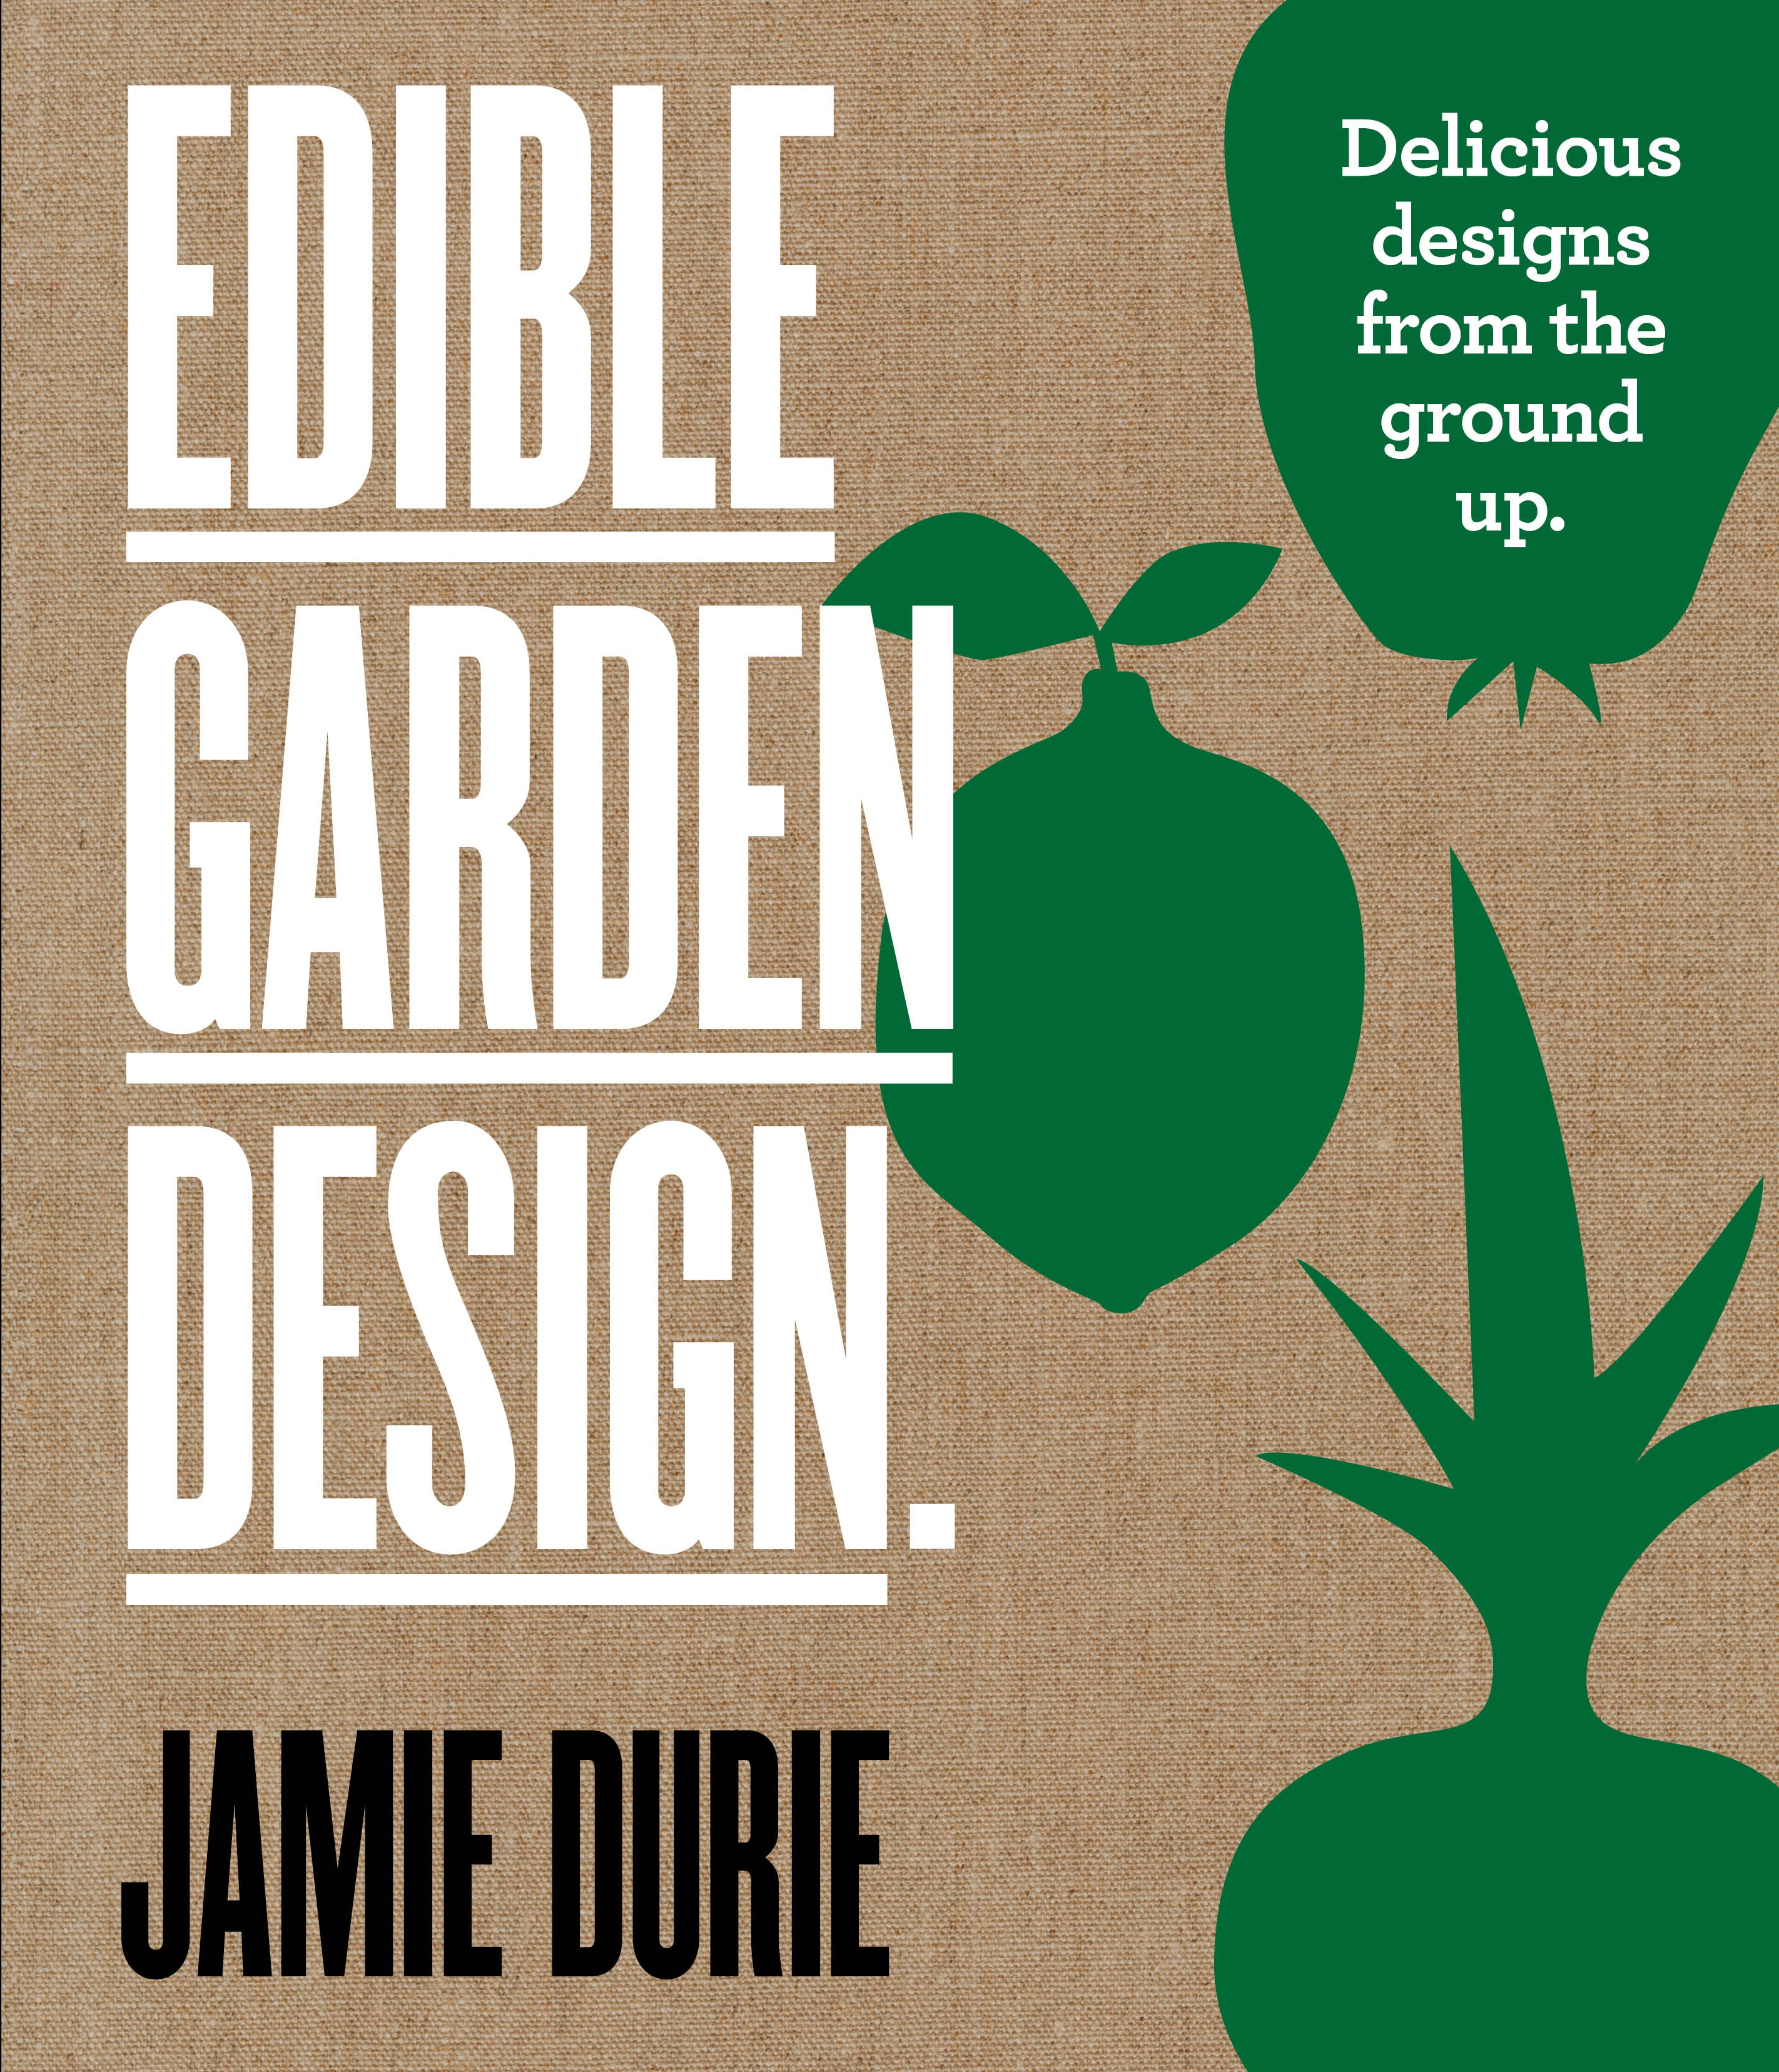 Character Design From The Ground Up Book : Edible garden design delicious designs from the ground up